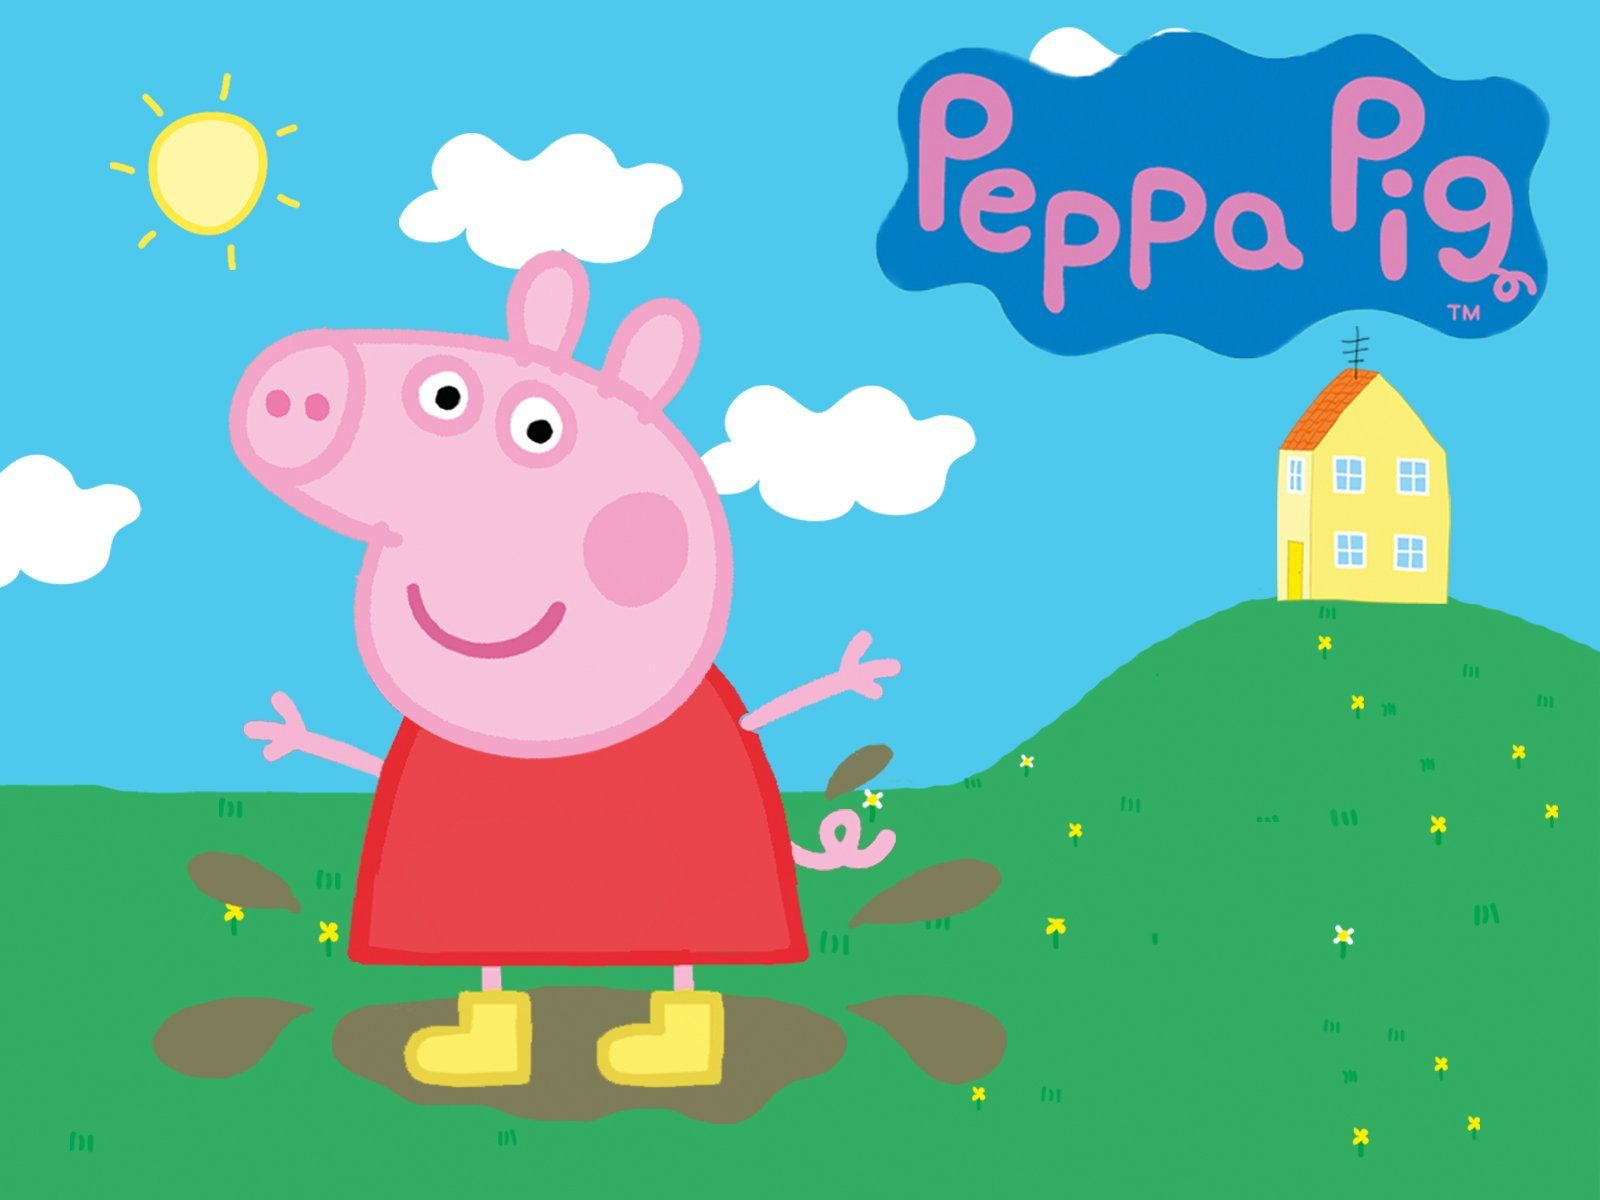 Peppa Pig House Wallpapers   Top Peppa Pig House Backgrounds 1600x1200